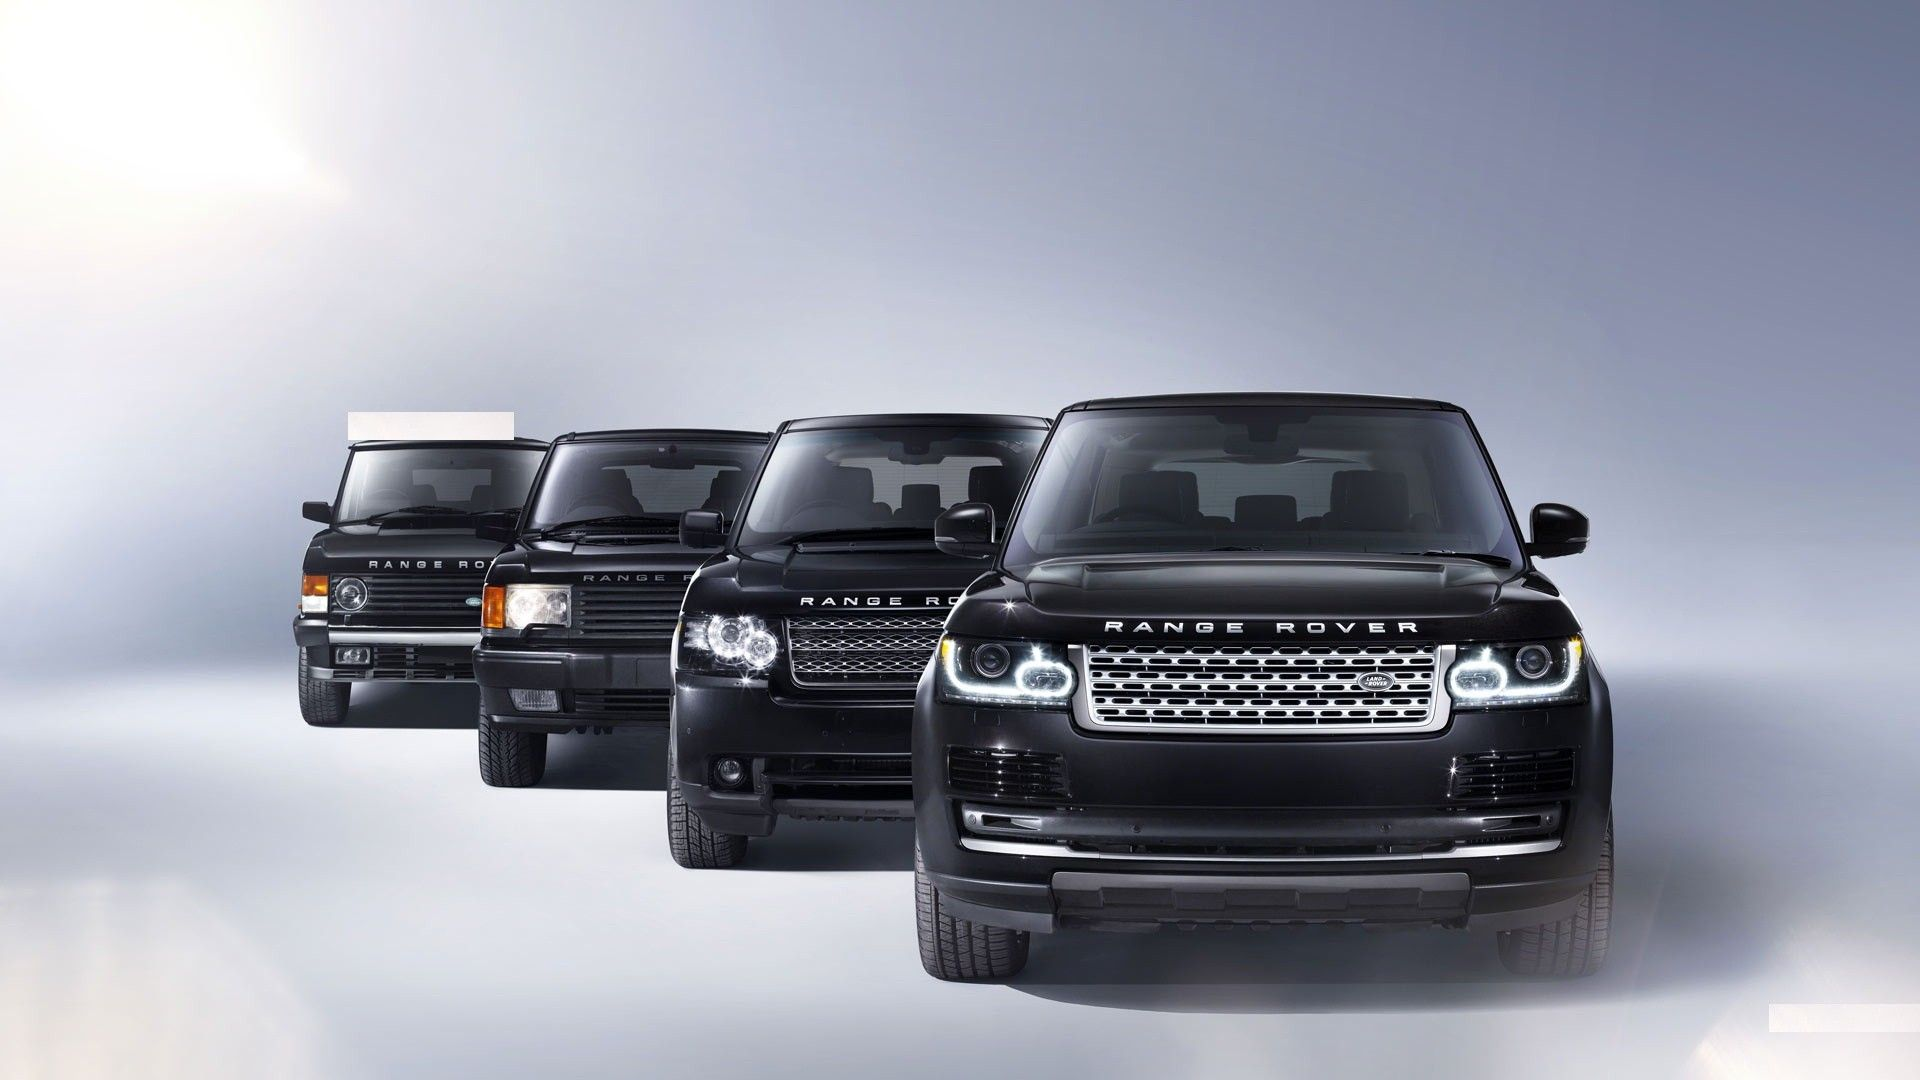 hd range rover wallpapers range rover background images for download. Black Bedroom Furniture Sets. Home Design Ideas